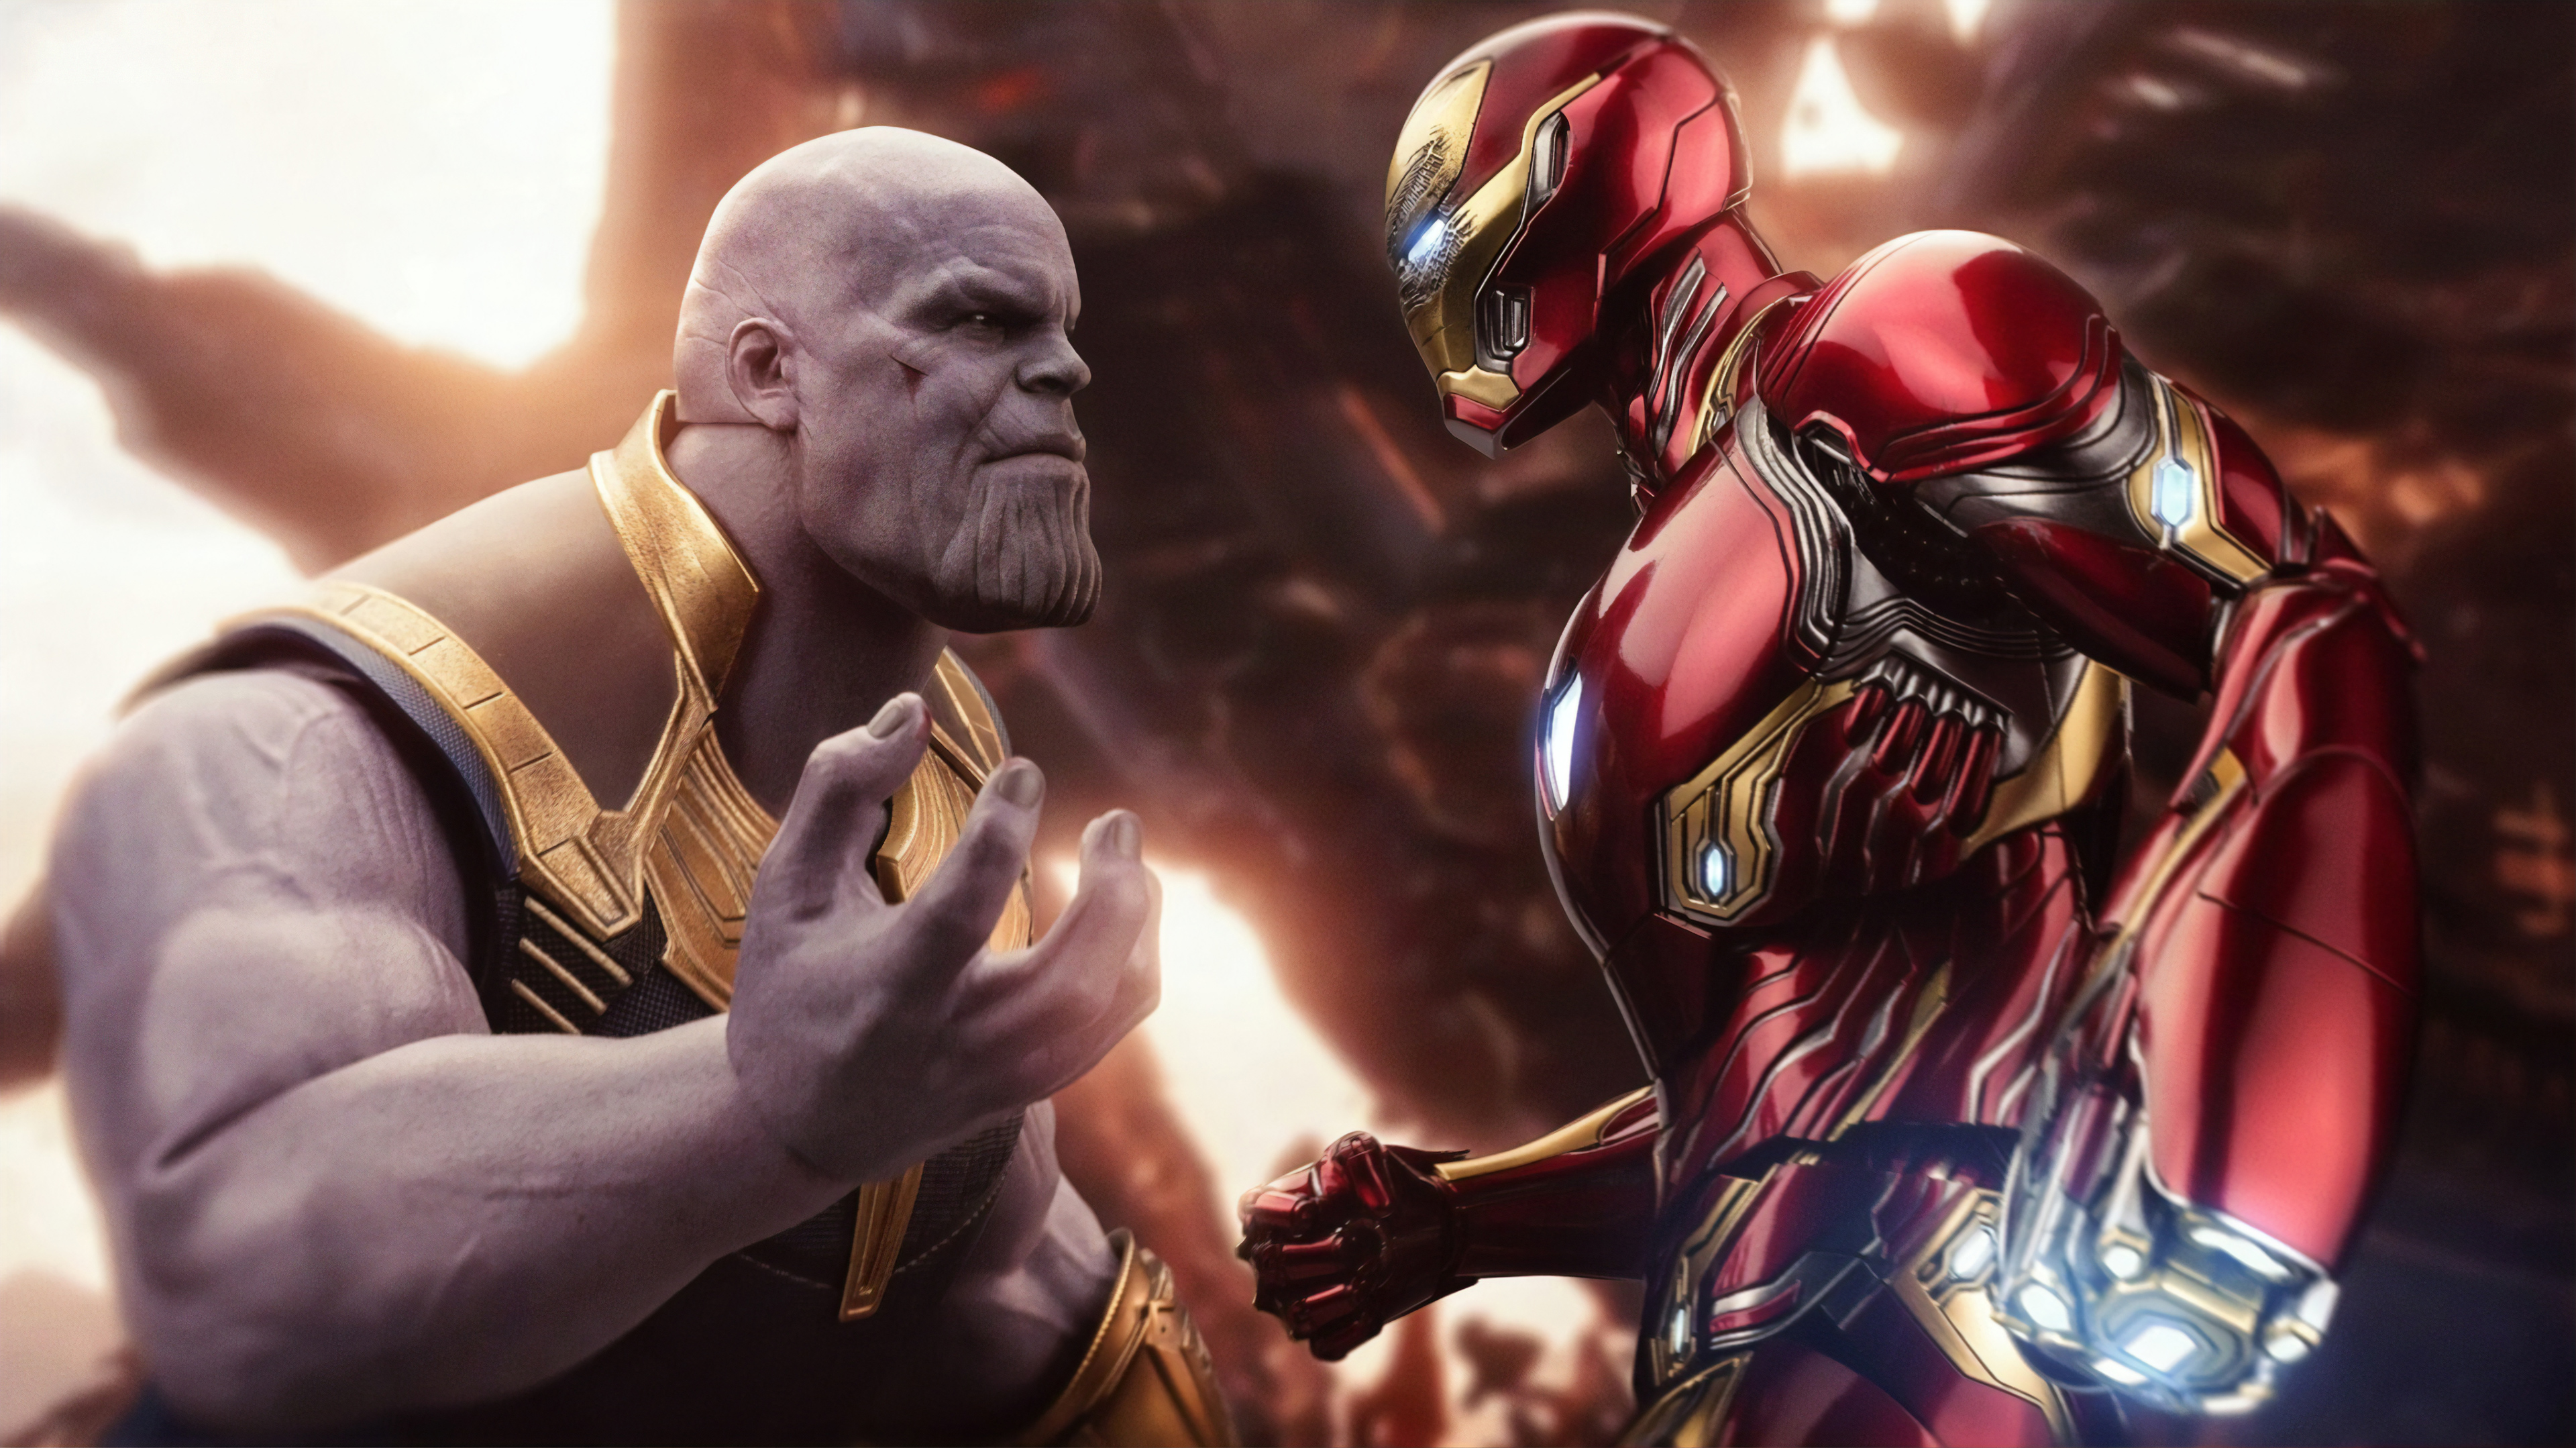 1366x768 4k Iron Man Thanos 1366x768 Resolution Hd 4k Wallpapers Images Backgrounds Photos And Pictures